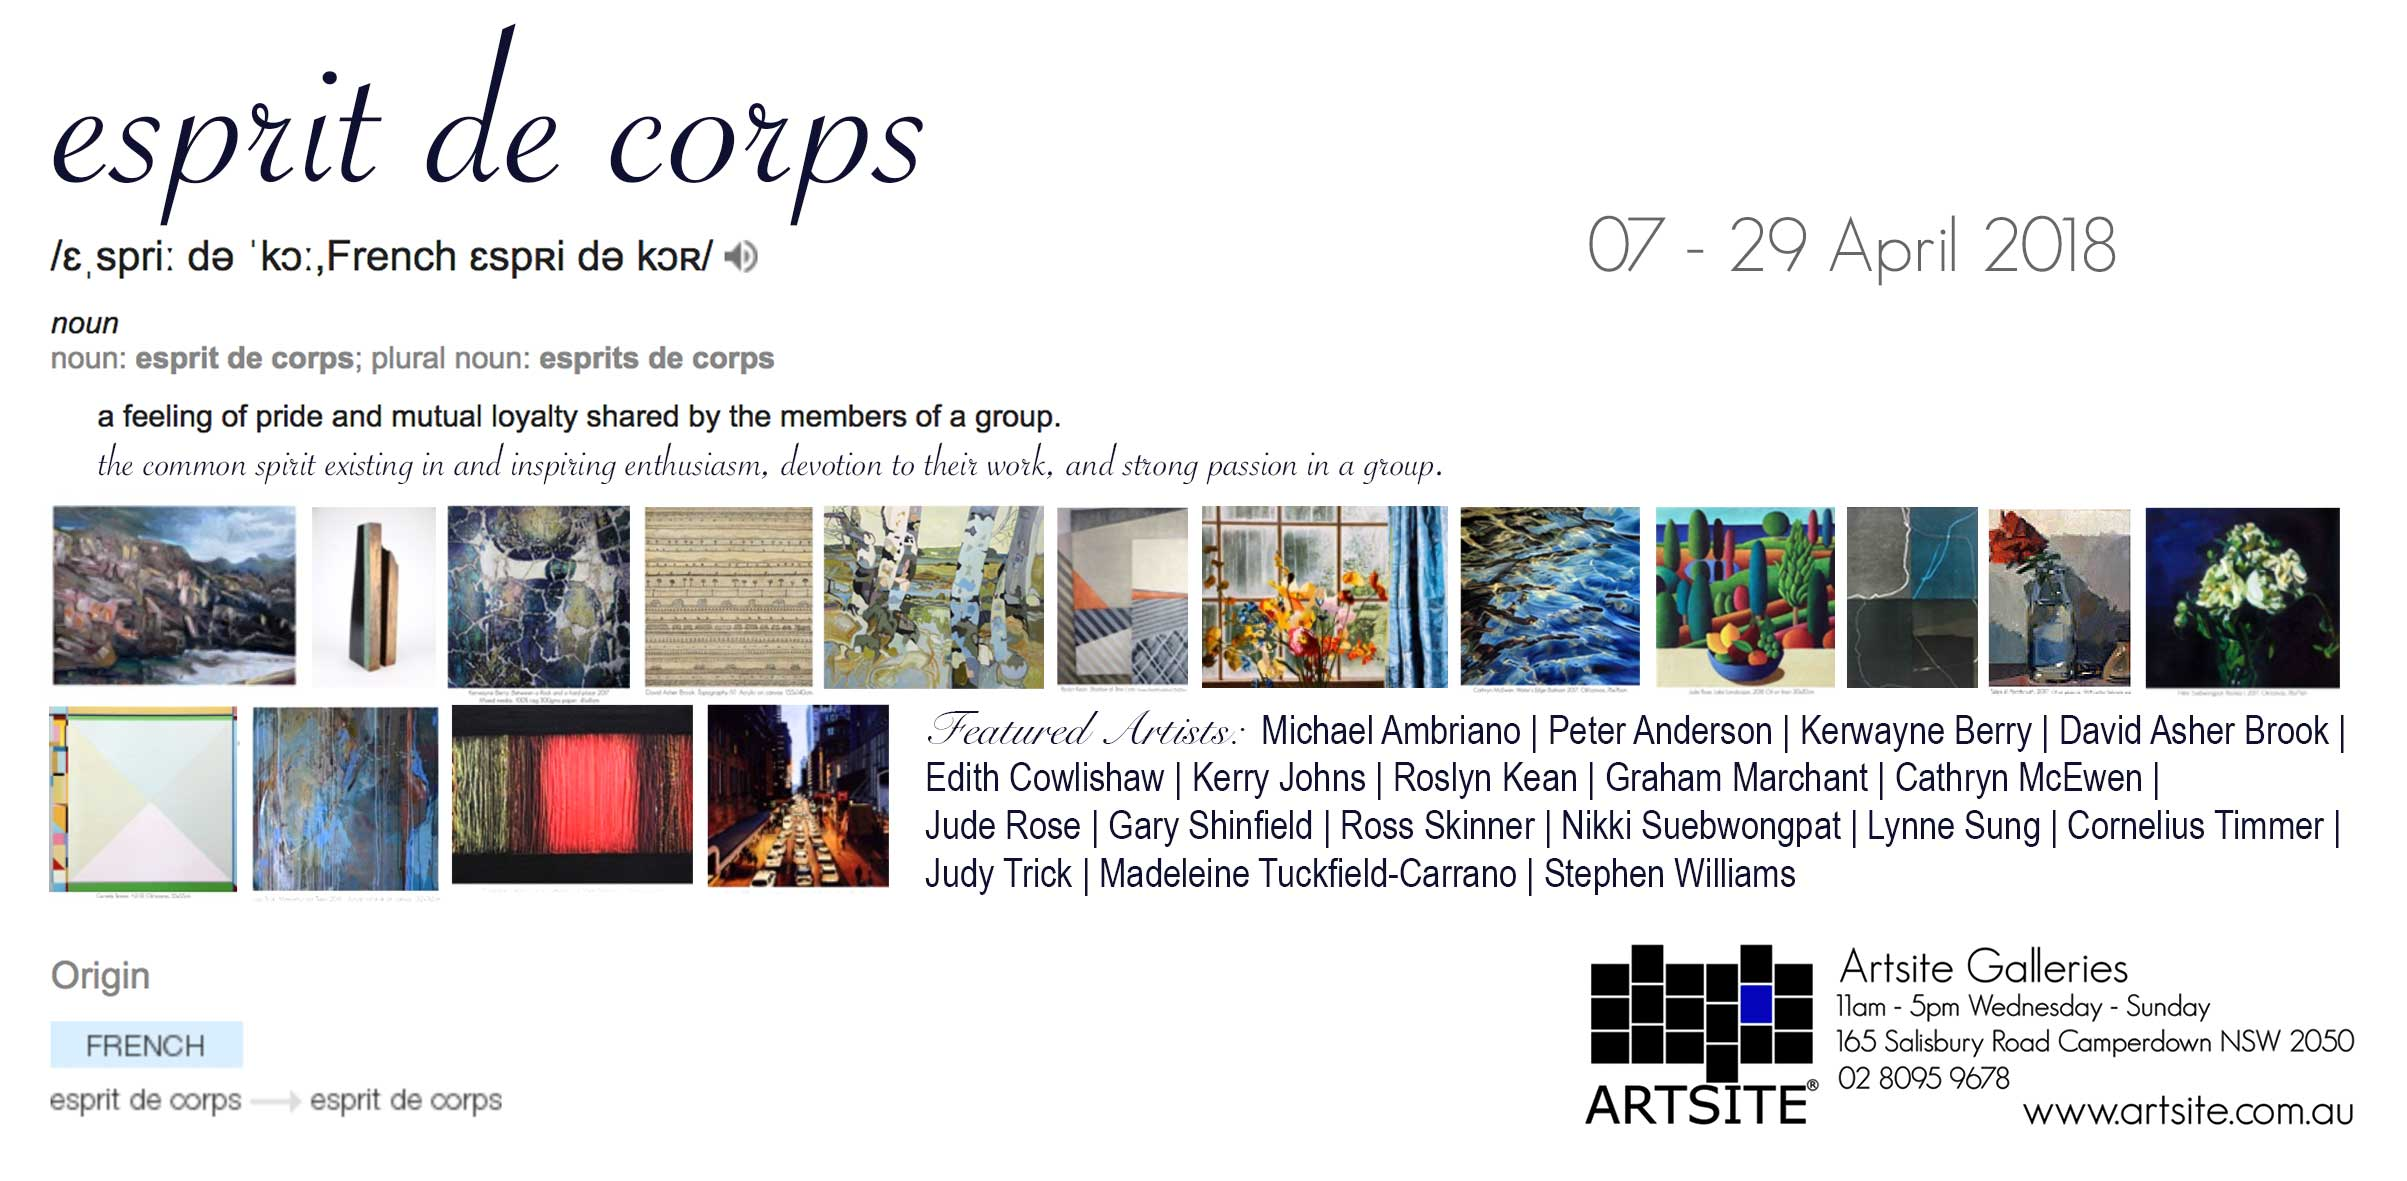 Esprit de Corps. Artsite Galleries 07-29 April 2018.